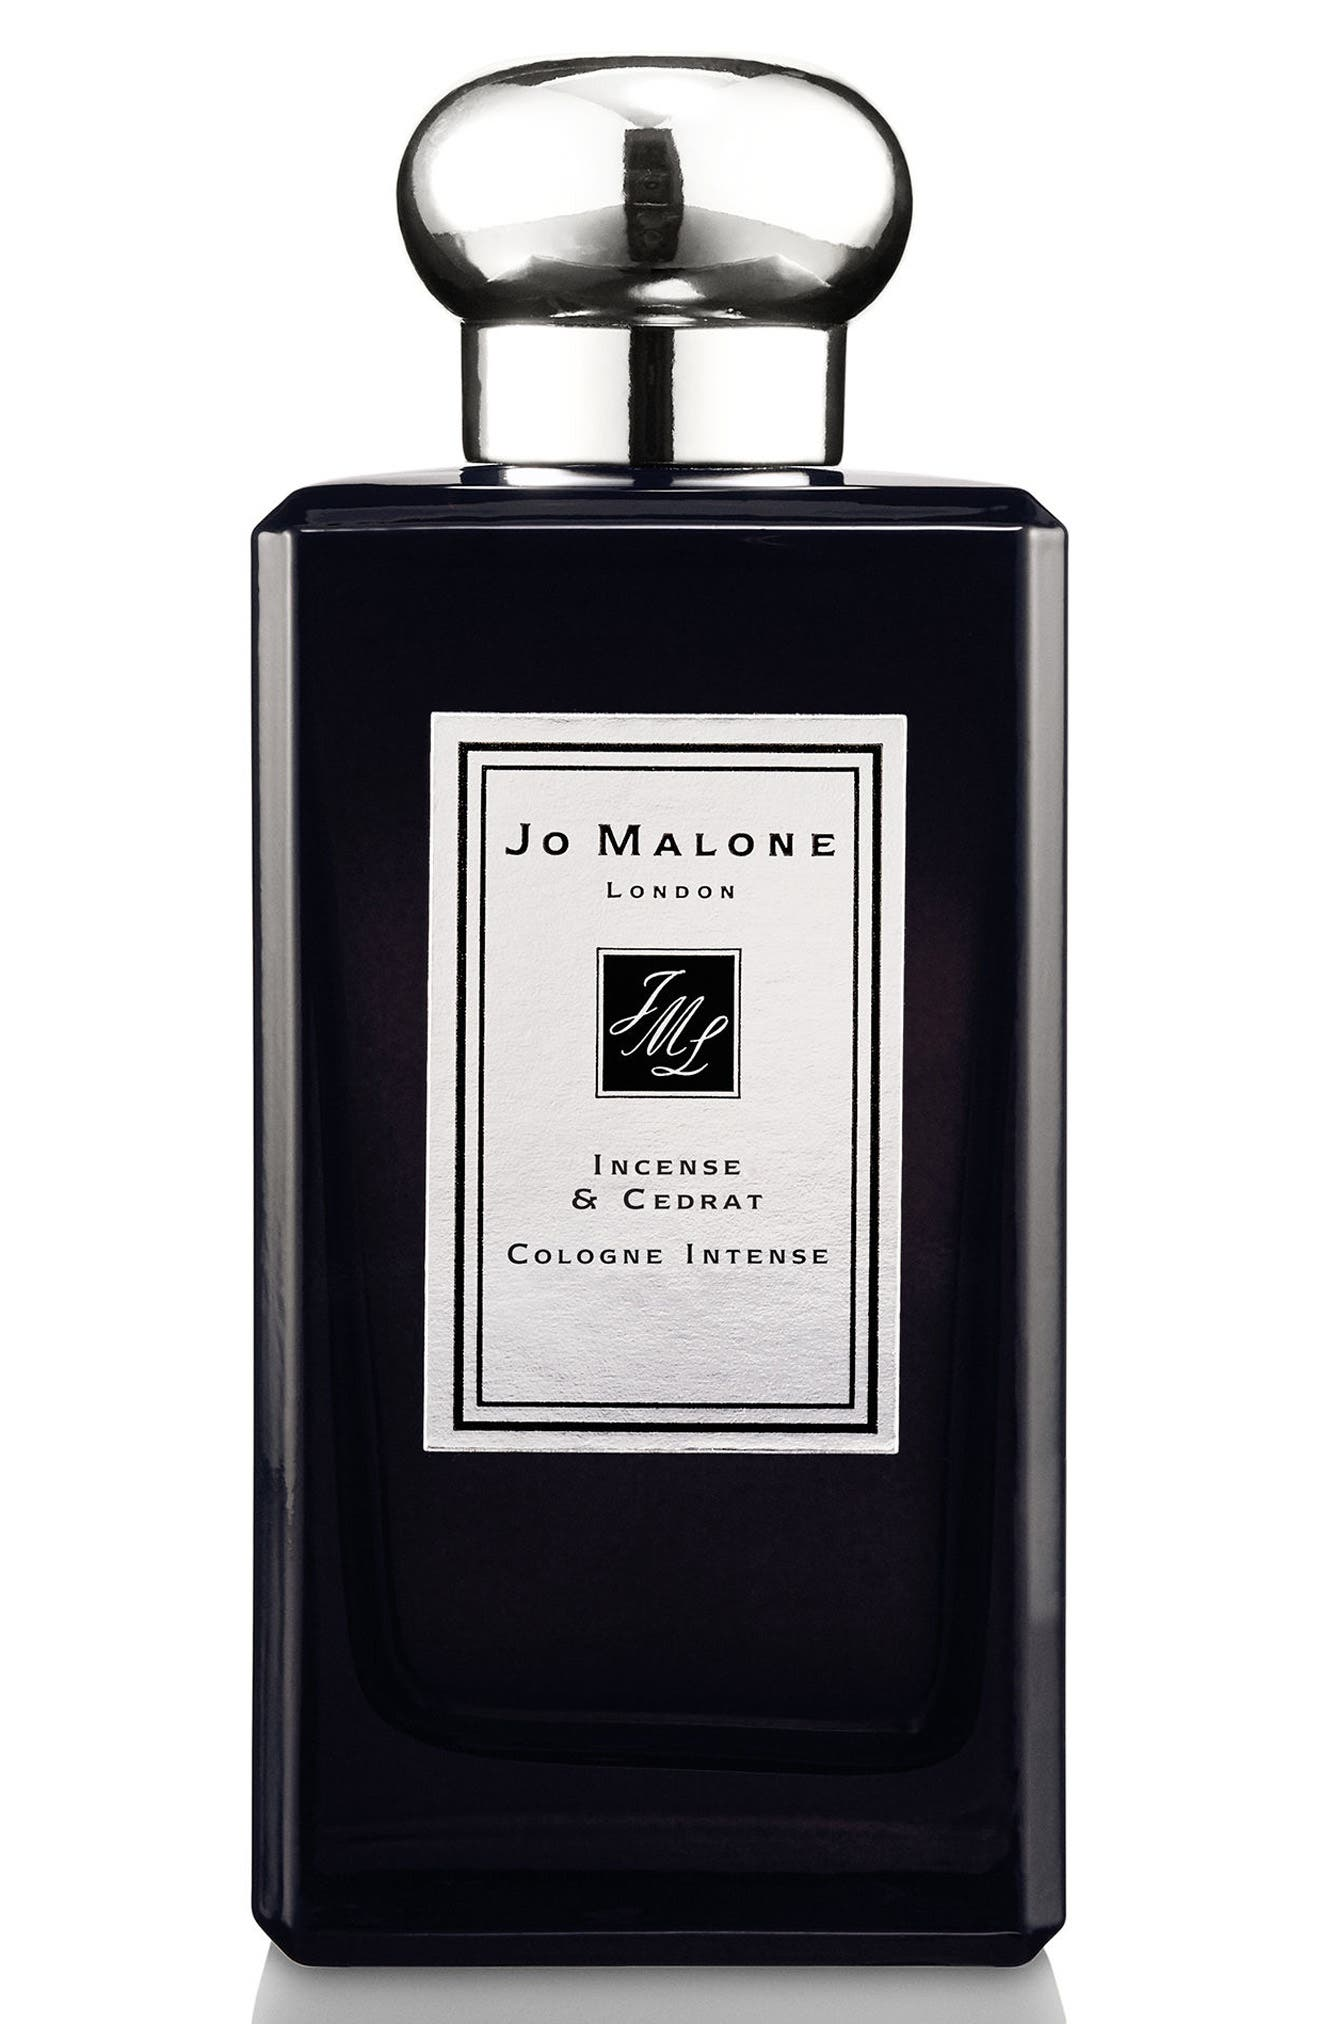 Jo Malone London(TM) Incense & Cedrat Cologne